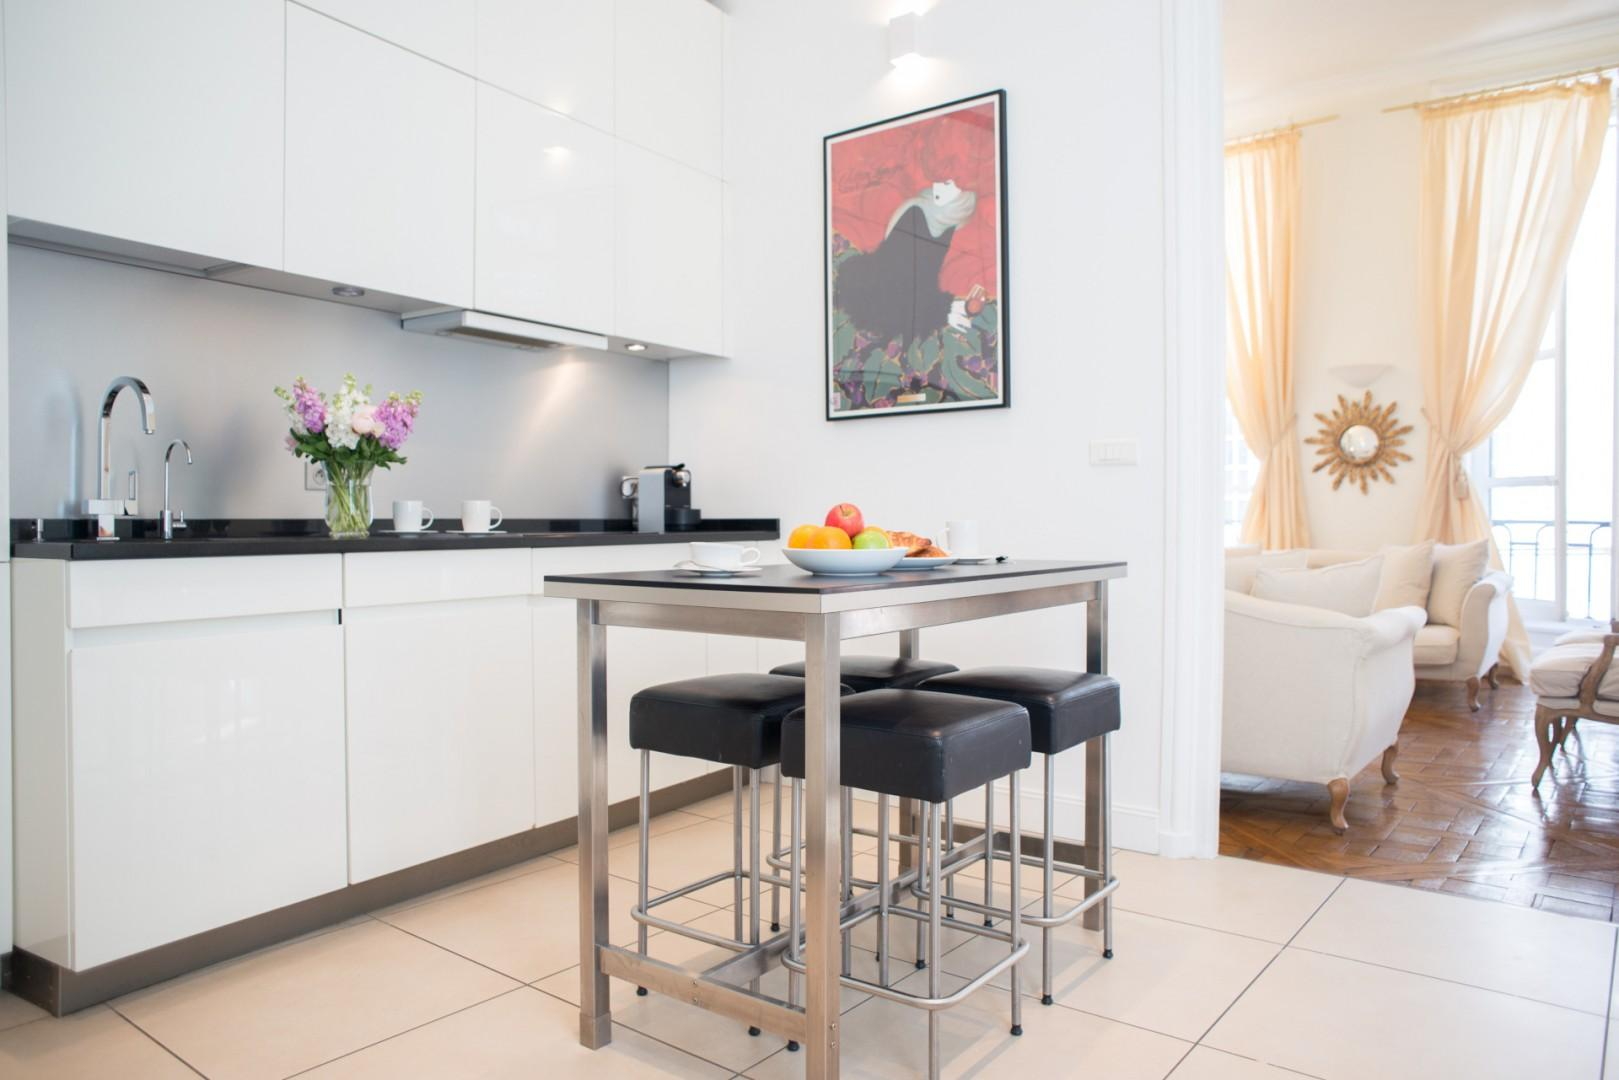 The sleek kitchen table is perfect for cooking or casual dining.